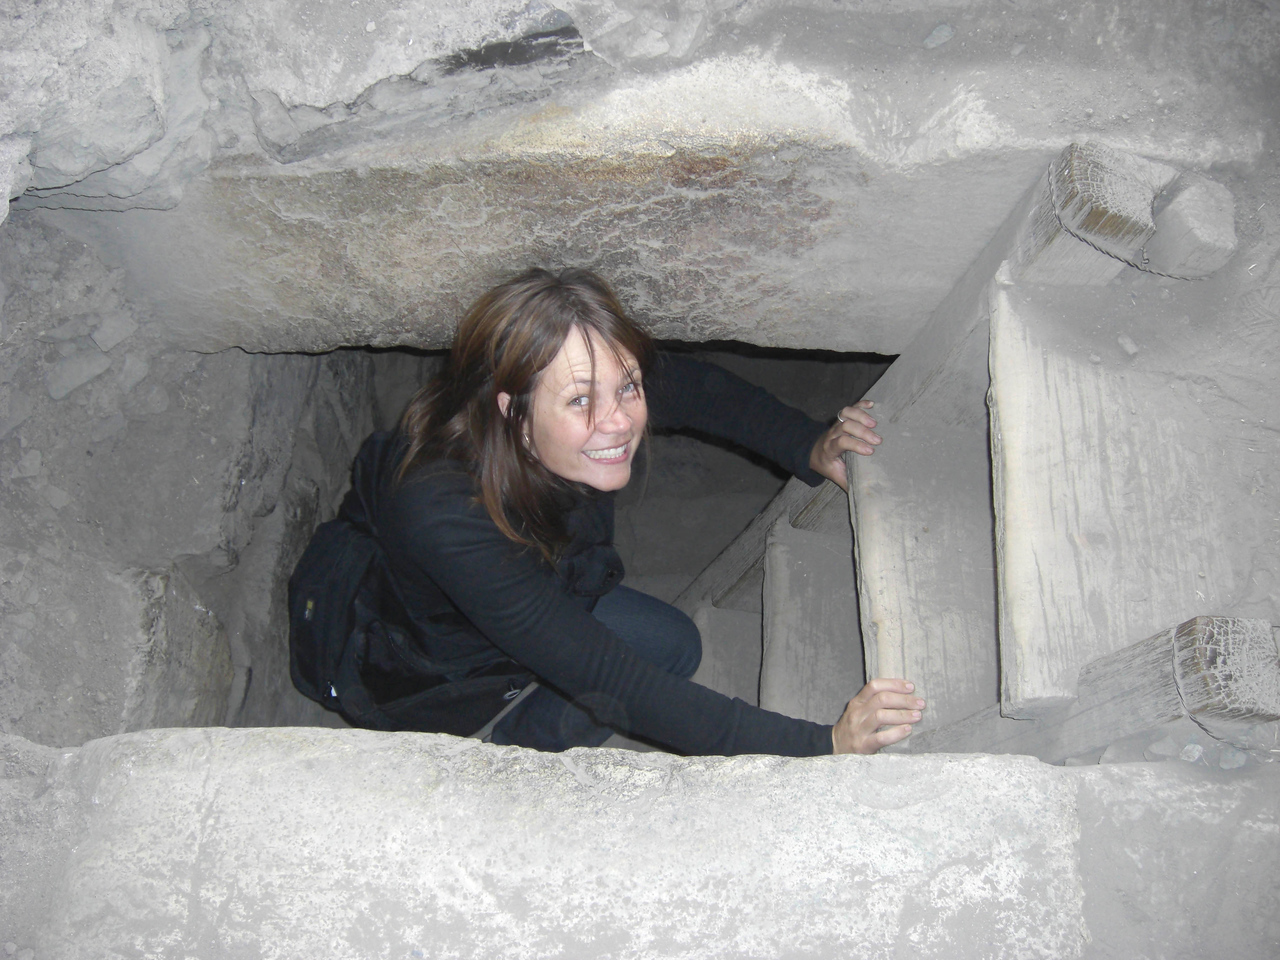 Climbing into the catacombs in Chavin